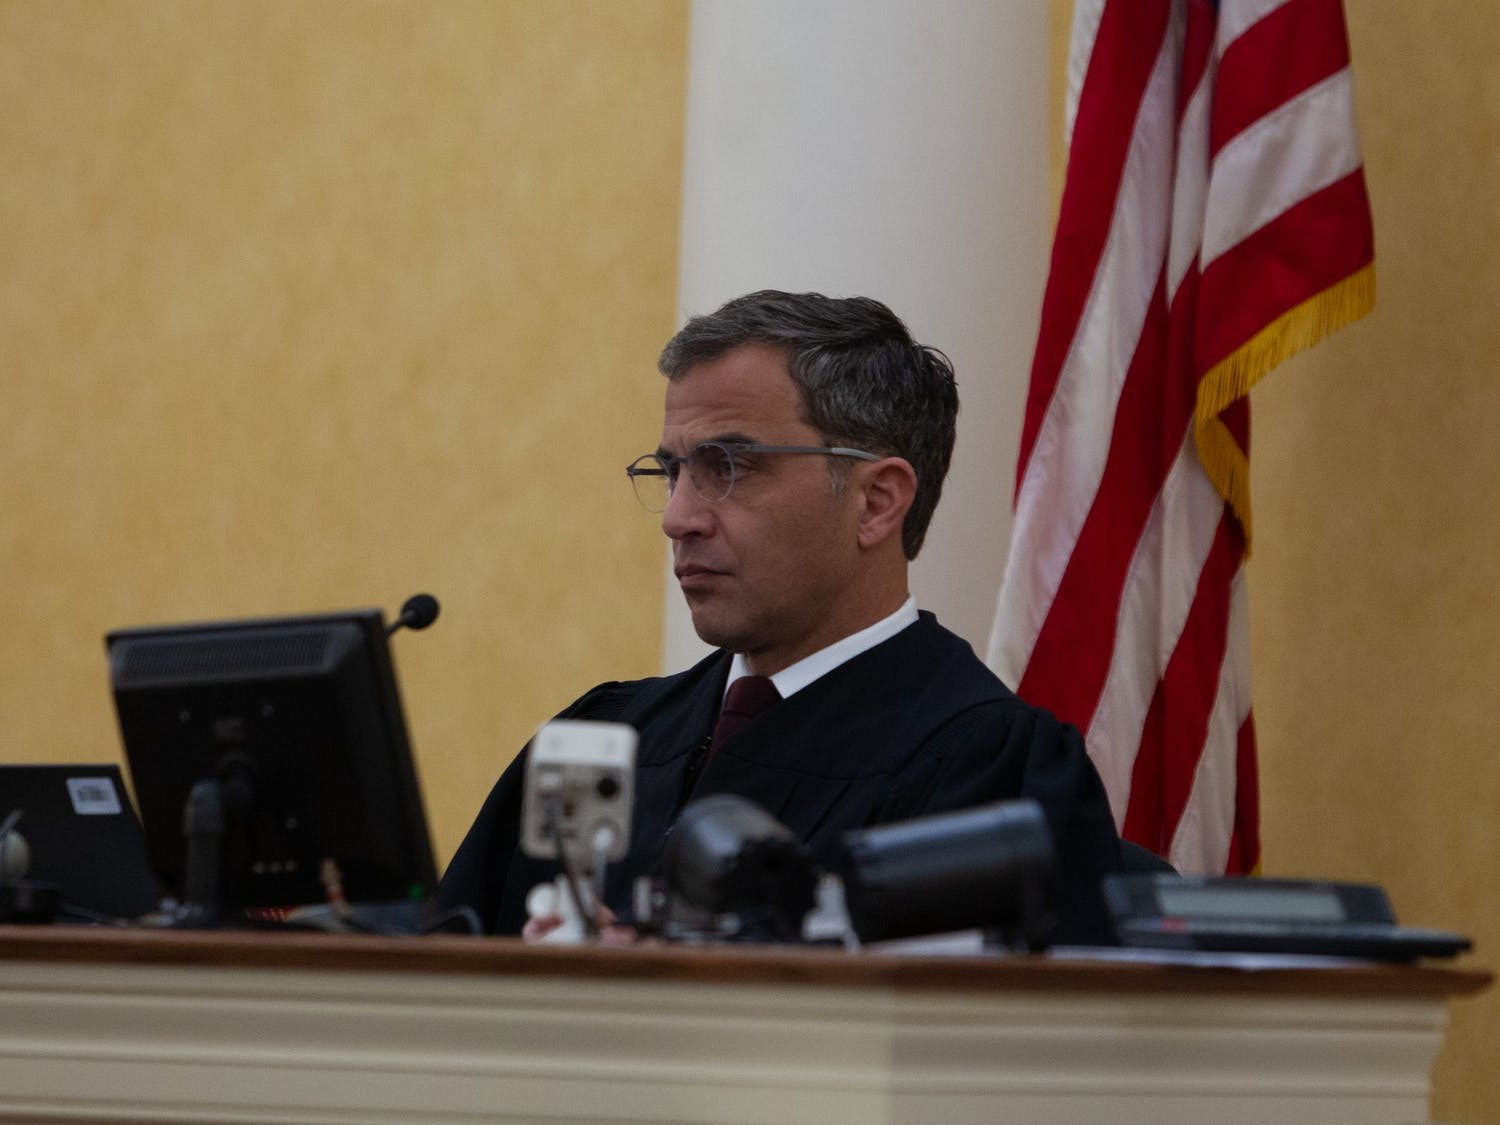 Judge Allen Baddour looks on as SCV lawyer Boyd Sturges speaks during the hearing on Wednesday. Feb. 12, 2020. Judge Baddour ruled to vacate the consent order and dismiss the lawsuit regarding Silent Sam.